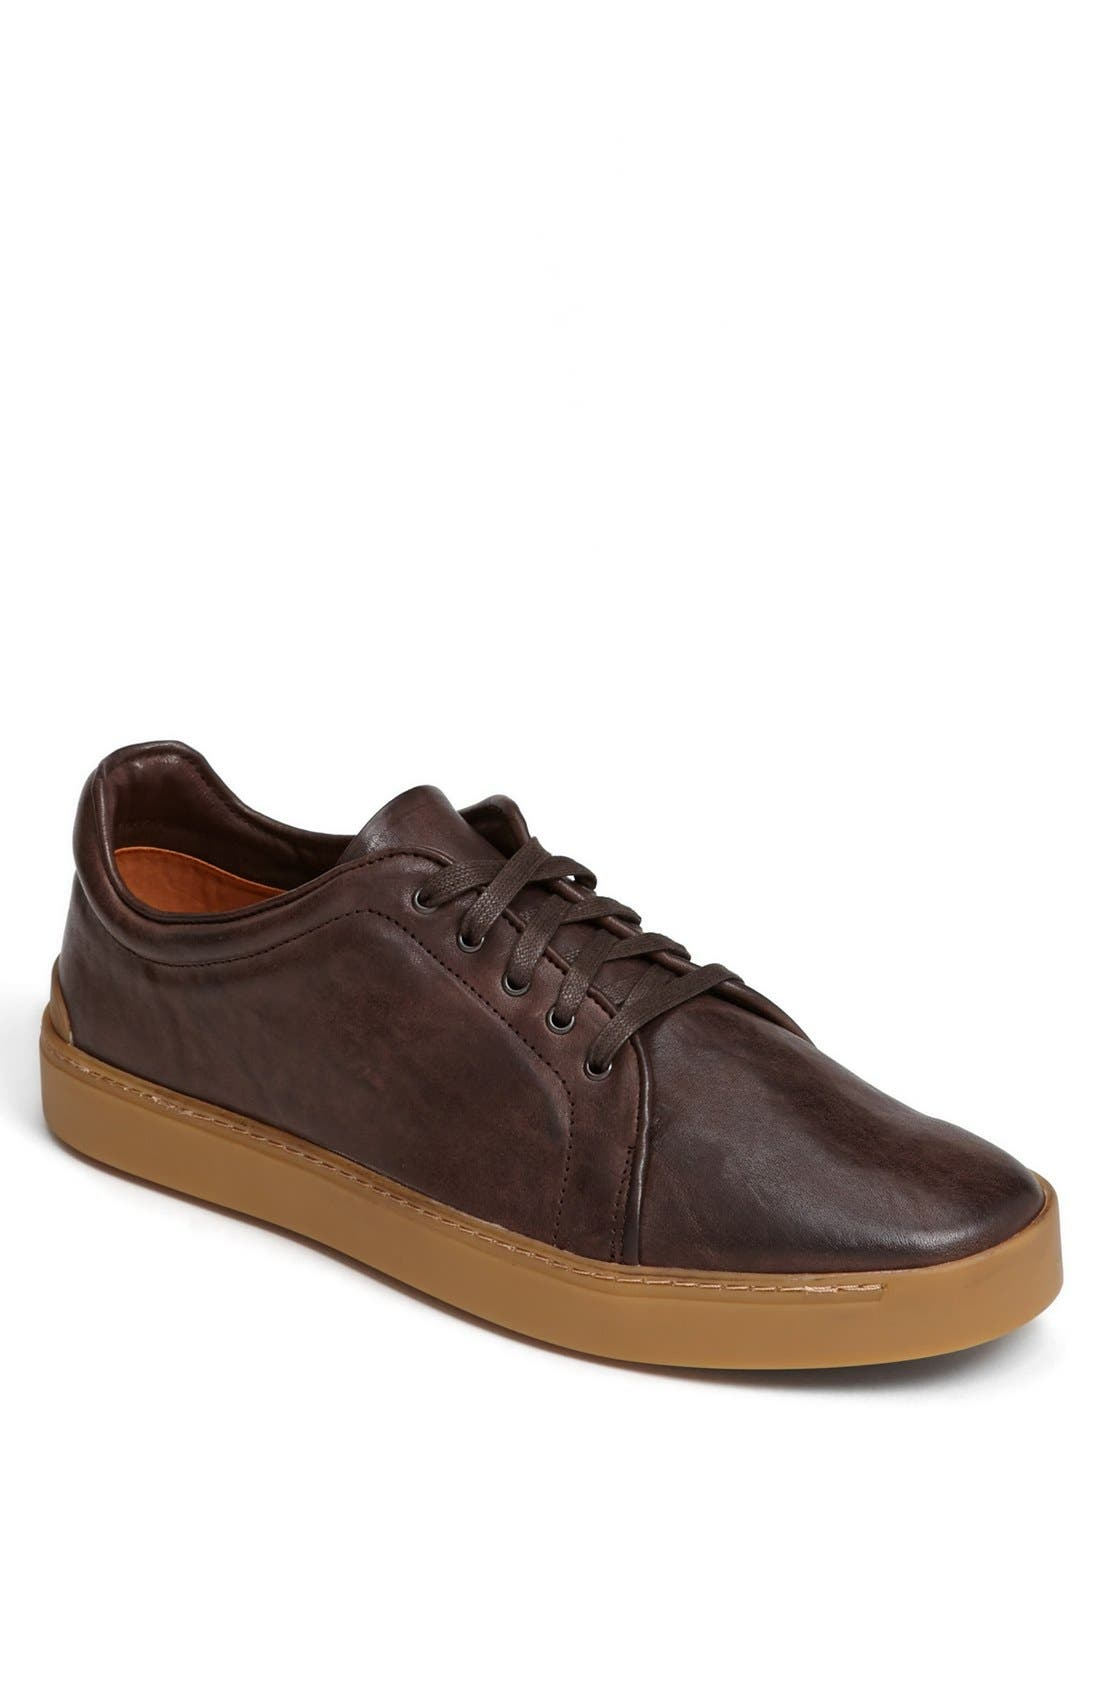 Alternate Image 1 Selected - rag & bone 'Kent' Leather Sneaker